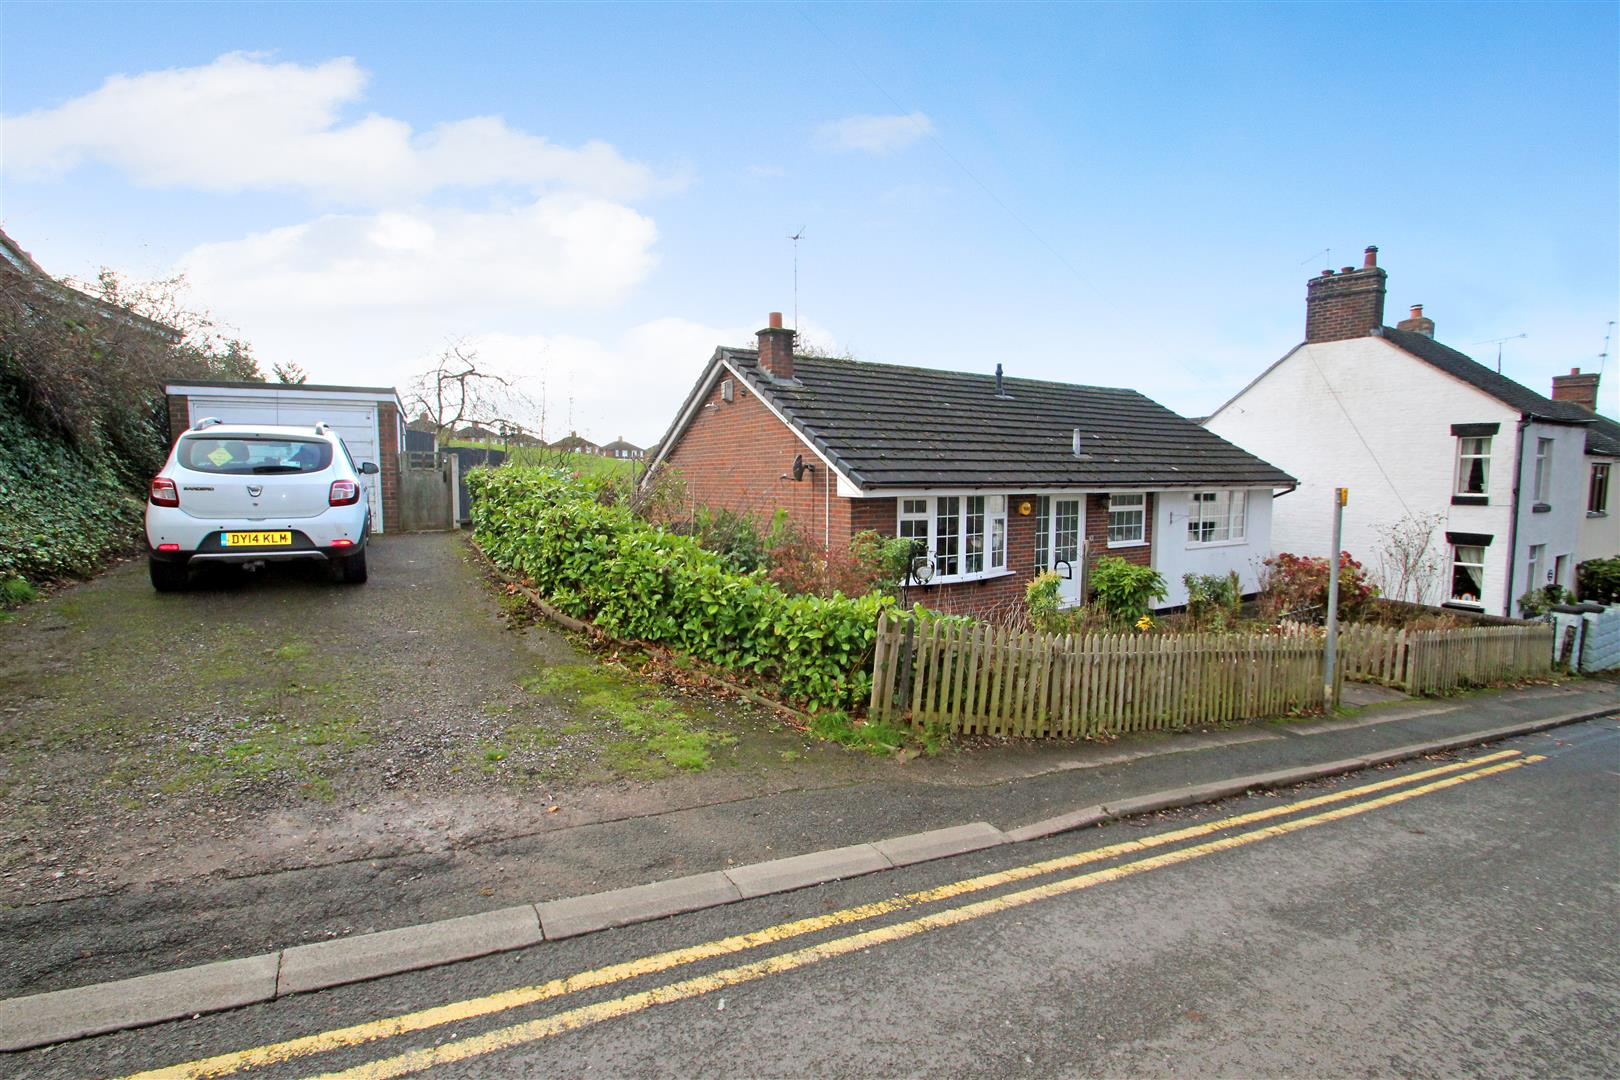 Church Lane, Hanford, Stoke-On-Trent Image 1